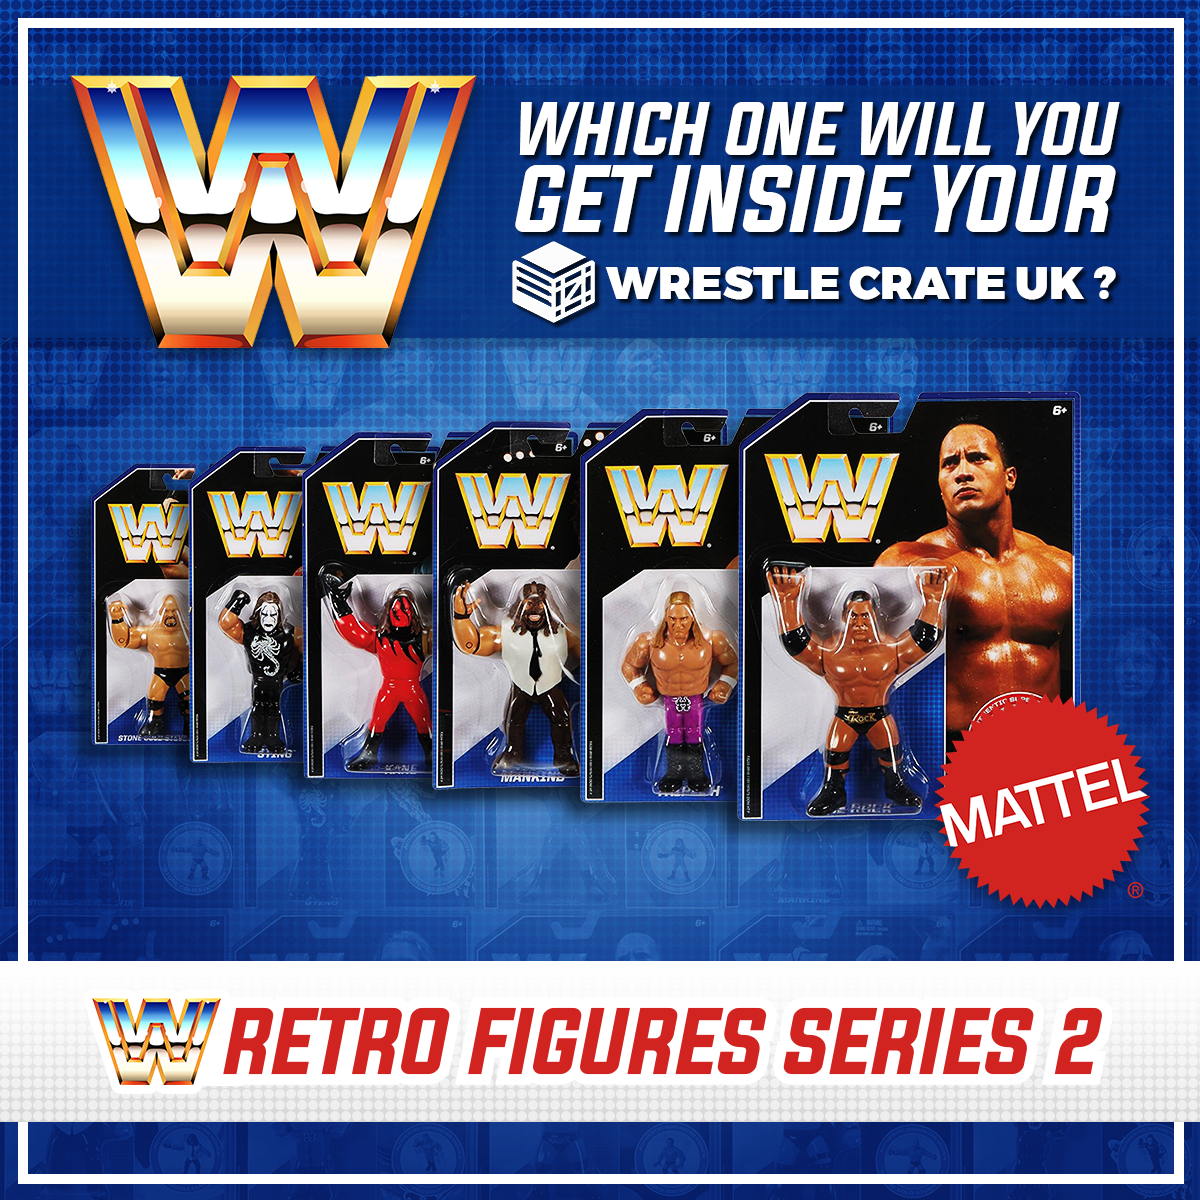 MattelSquare.png?ts=1505936921&host=www.wrestlecrate.co.uk